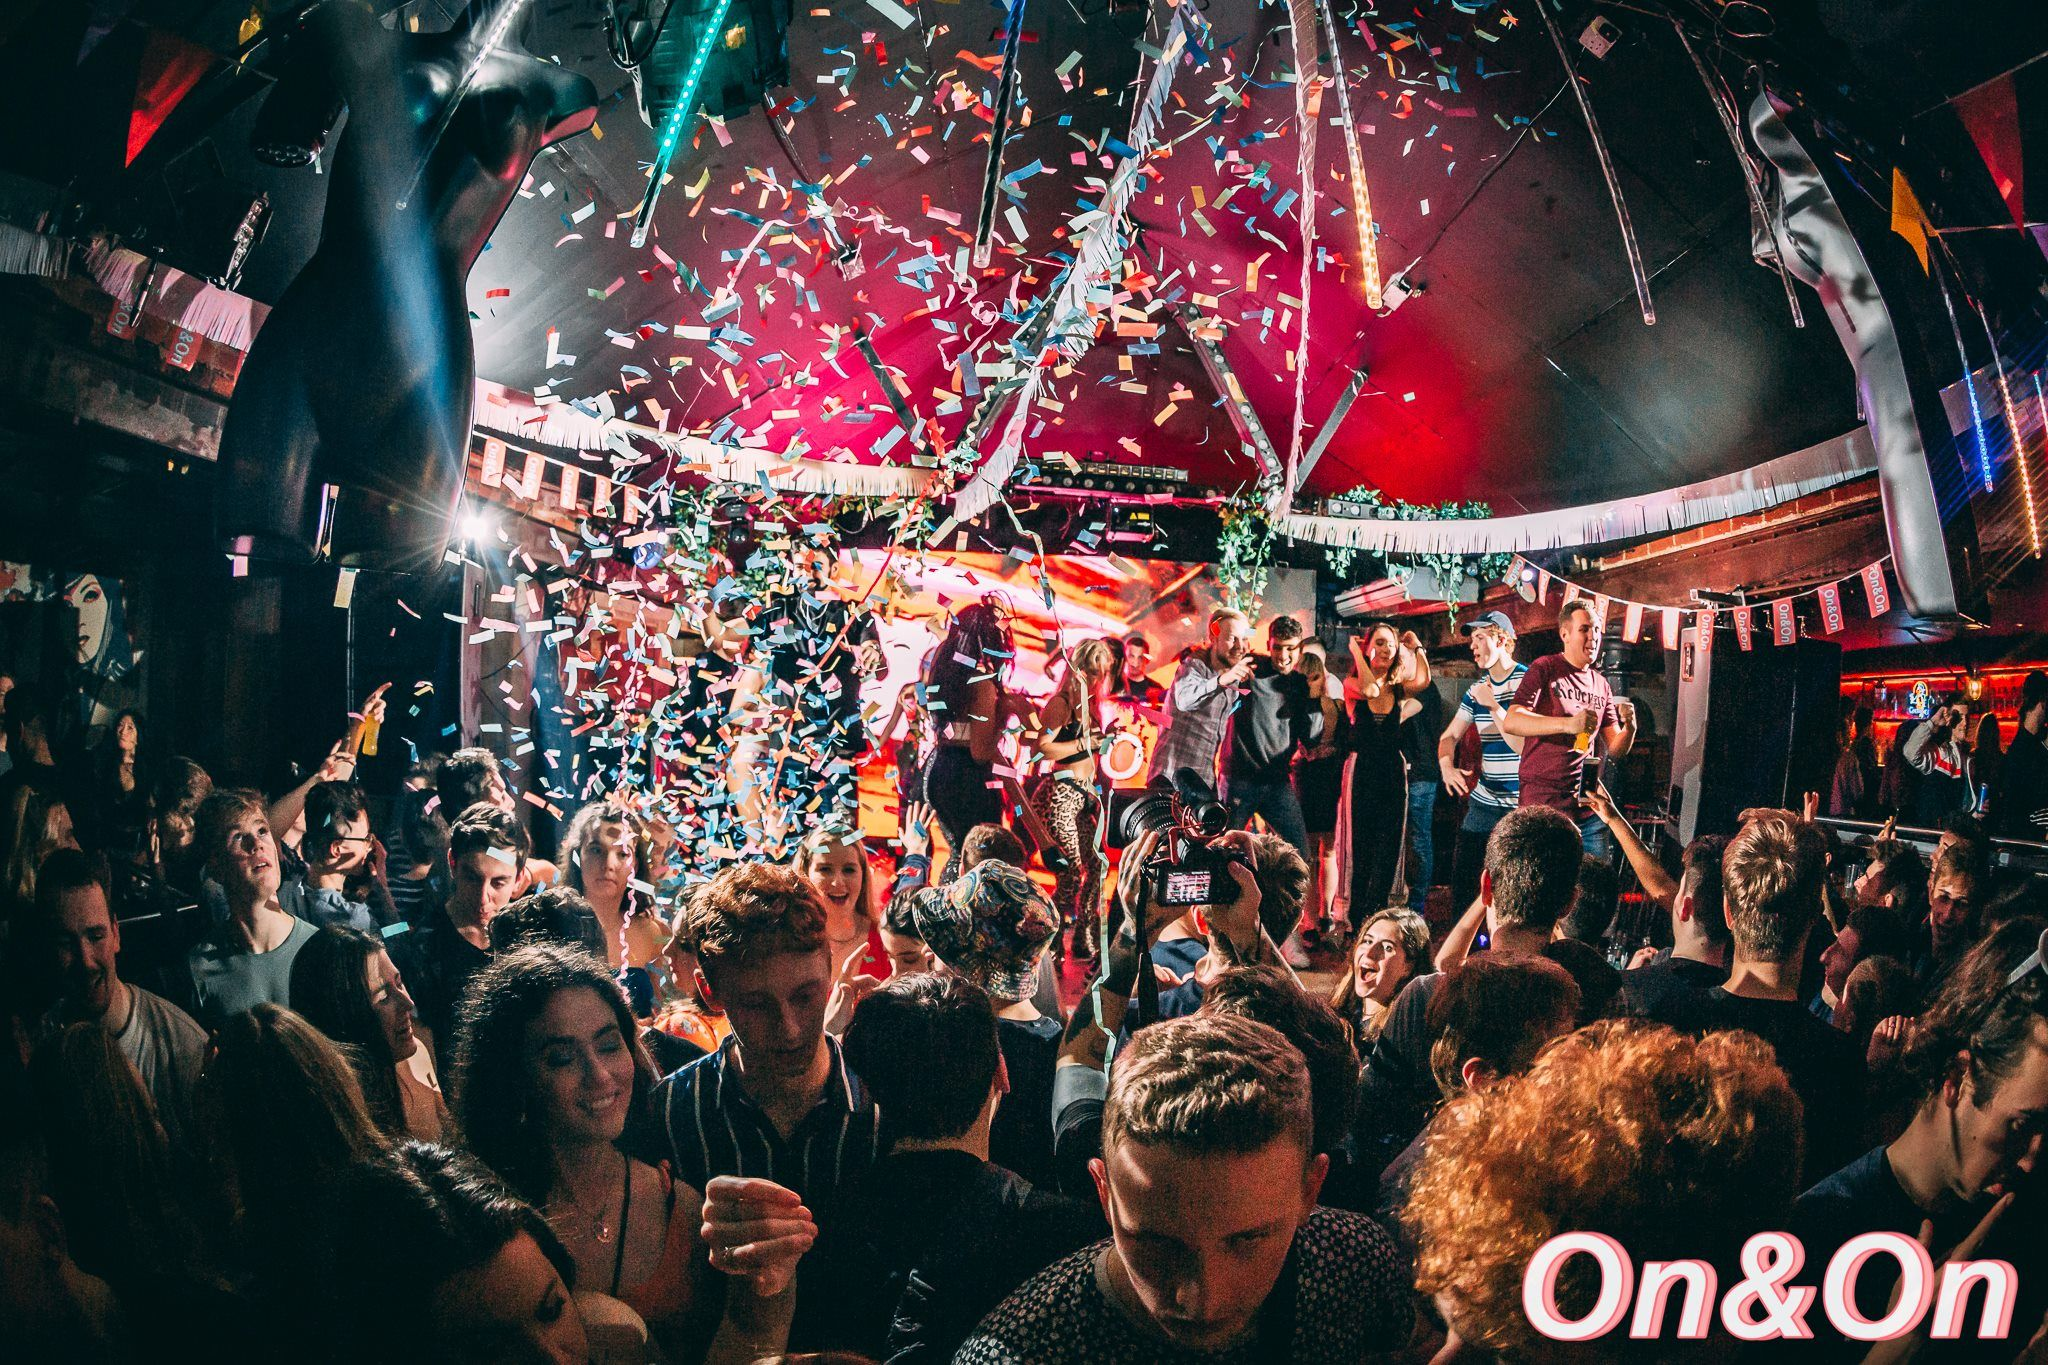 Image may contain: Festival, Confetti, Party, Paper, Night Club, Crowd, Club, Human, Person